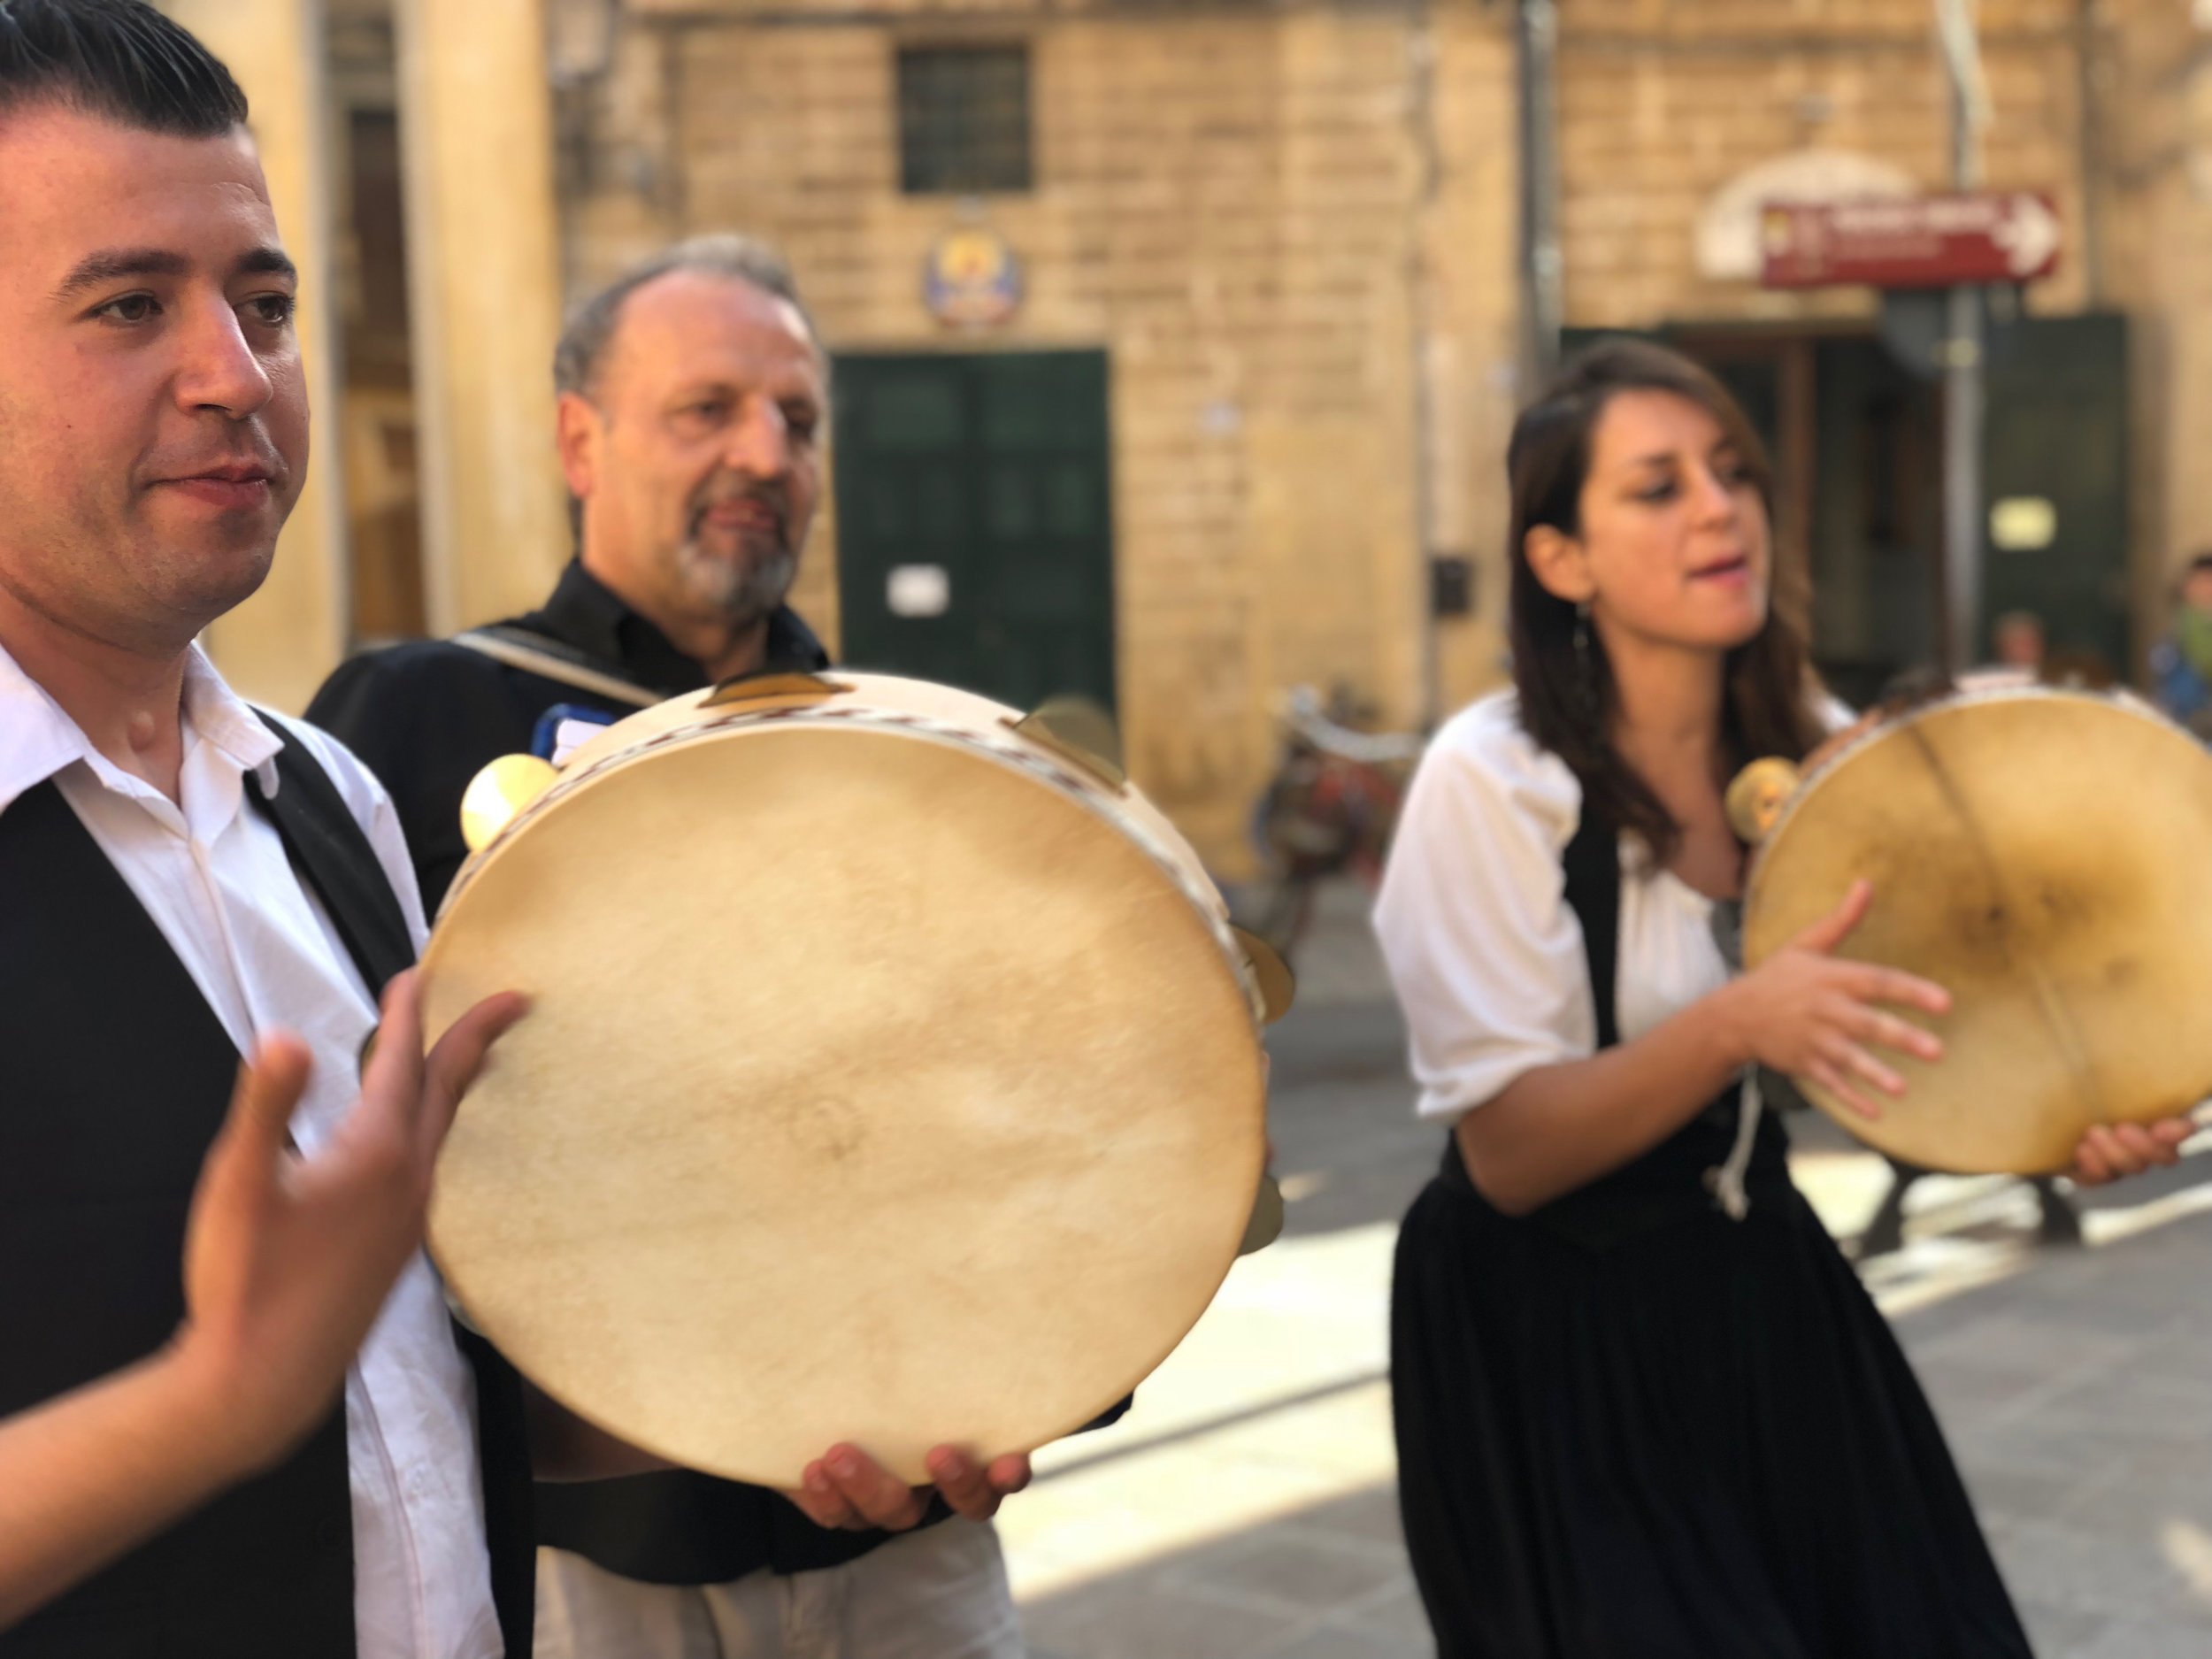 musicians performing the typical pizzica music/dance from salento. THIS FOLLOWING OUR COOKING CLASS AT COOK IN PUGLIA BY YLE TOURS.